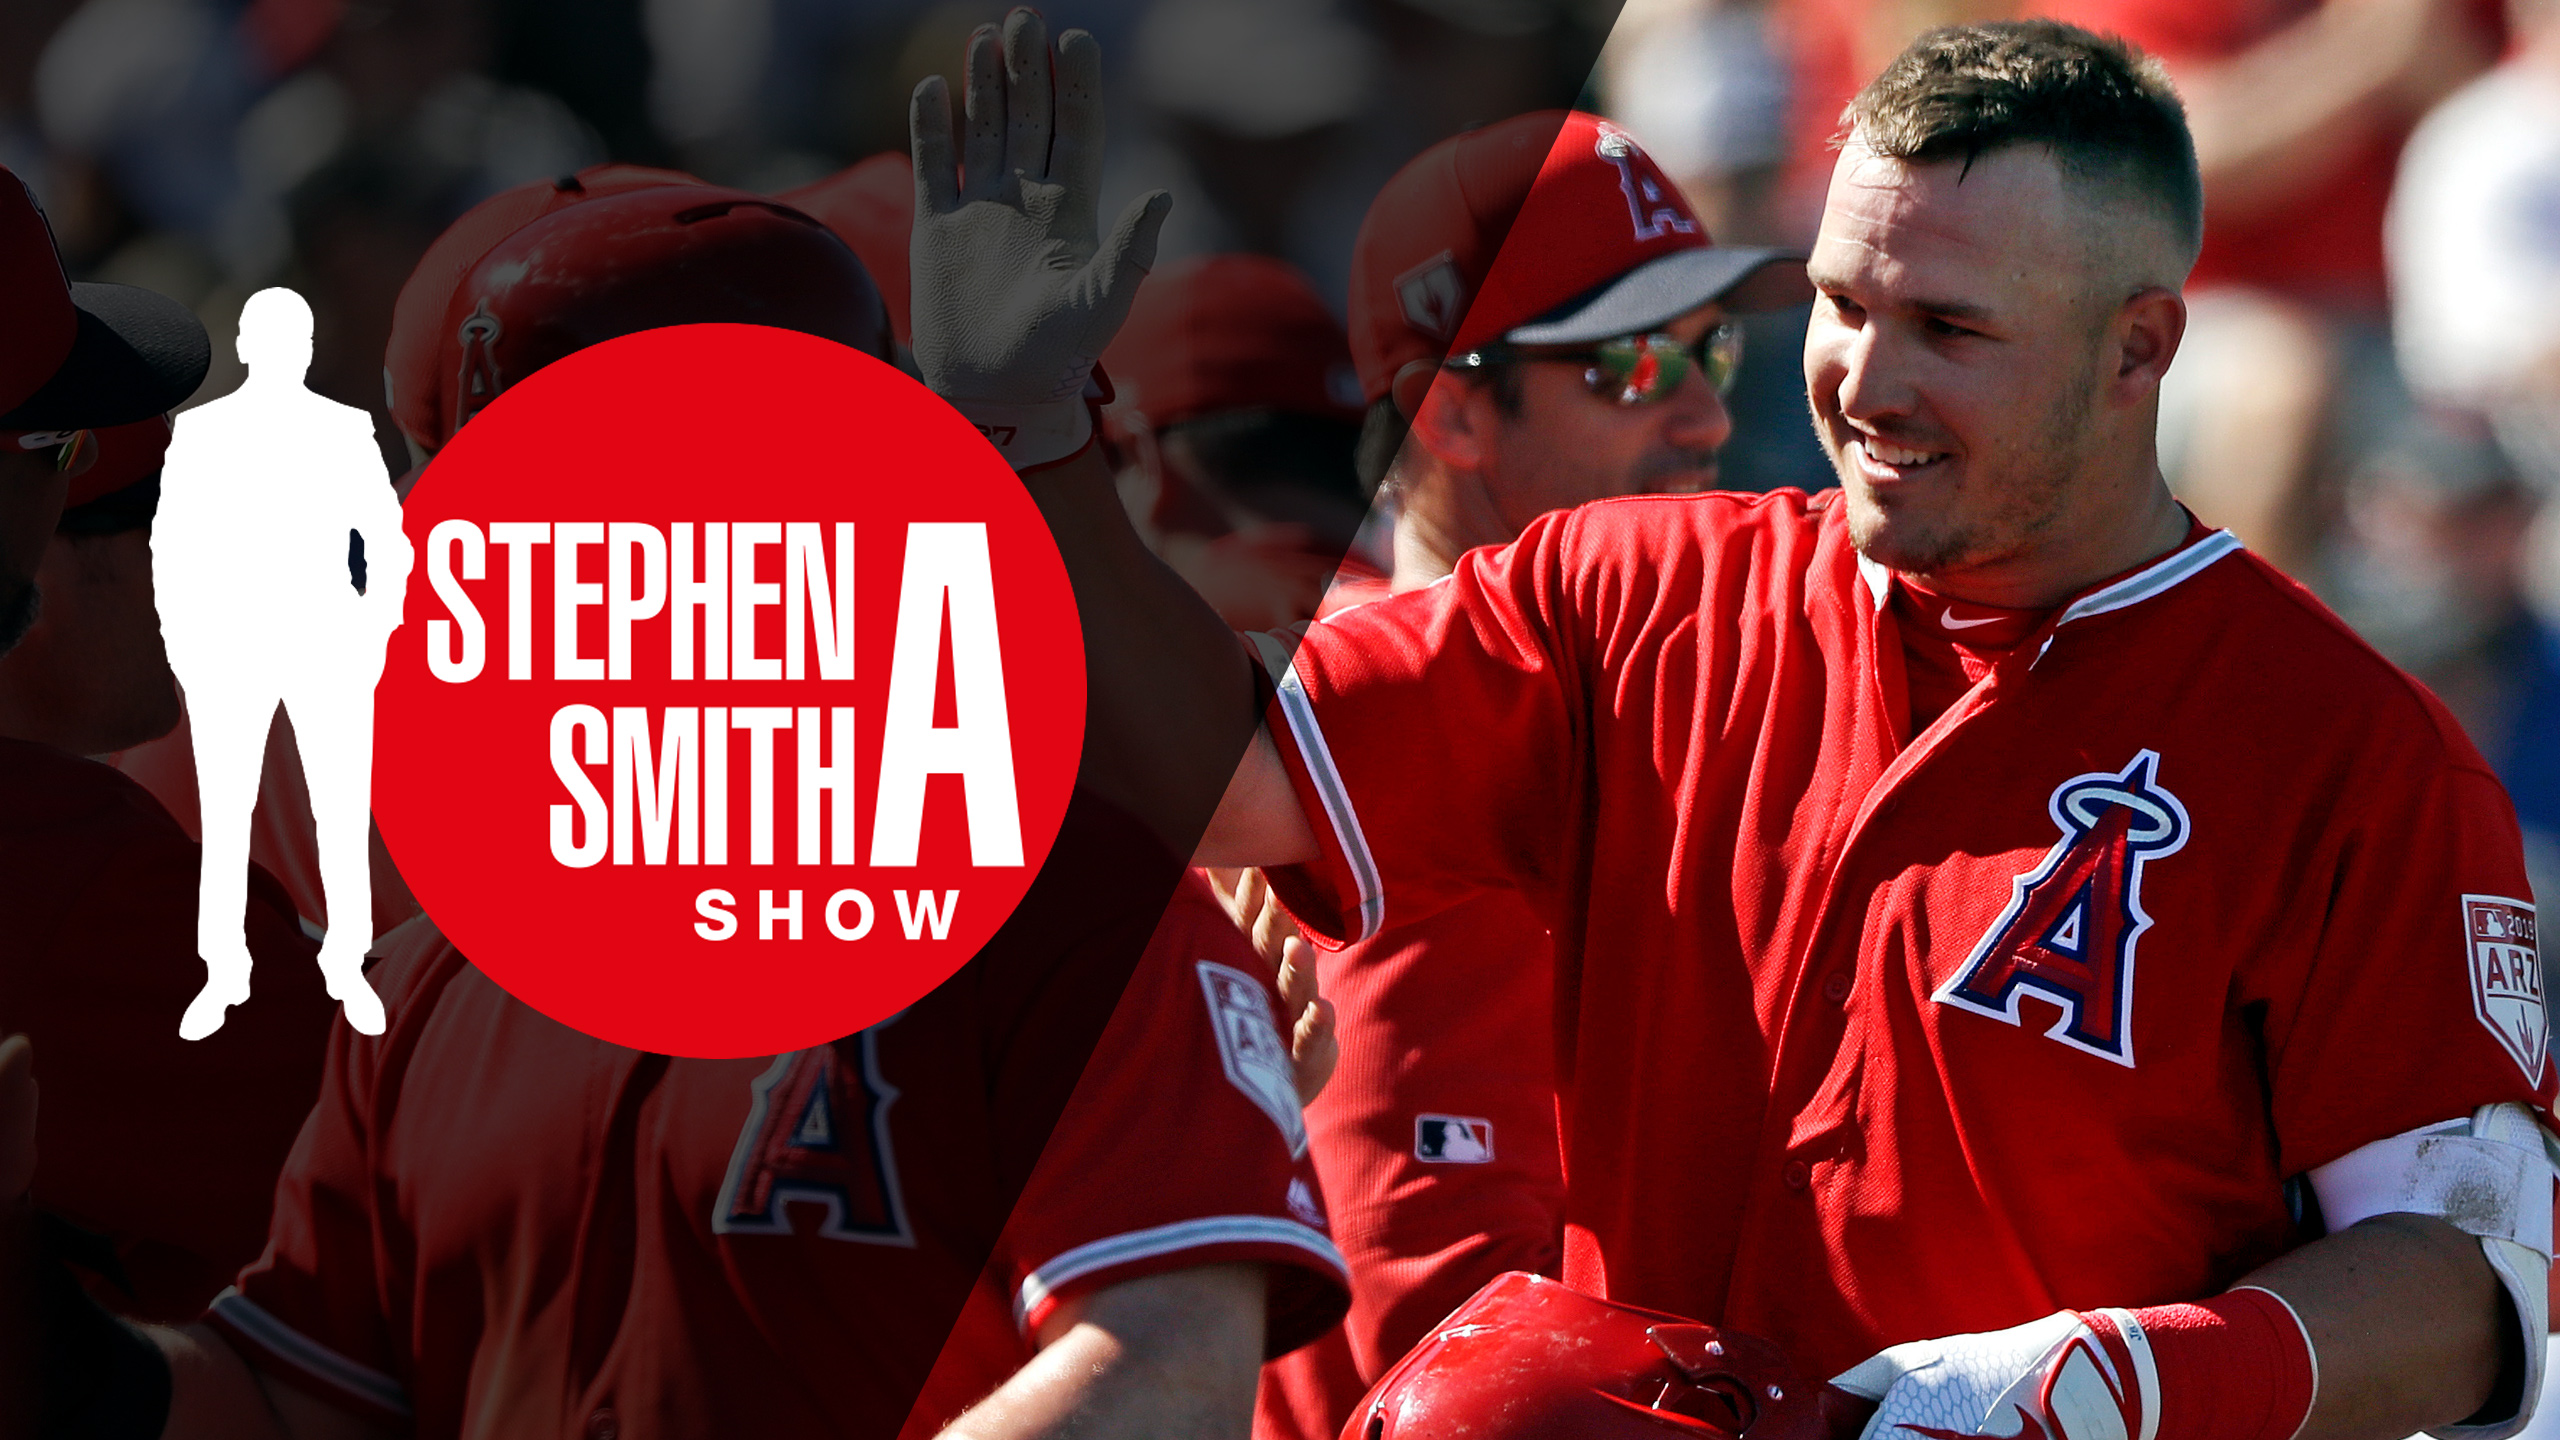 Tue, 3/19 - The Stephen A. Smith Show Presented by Progressive